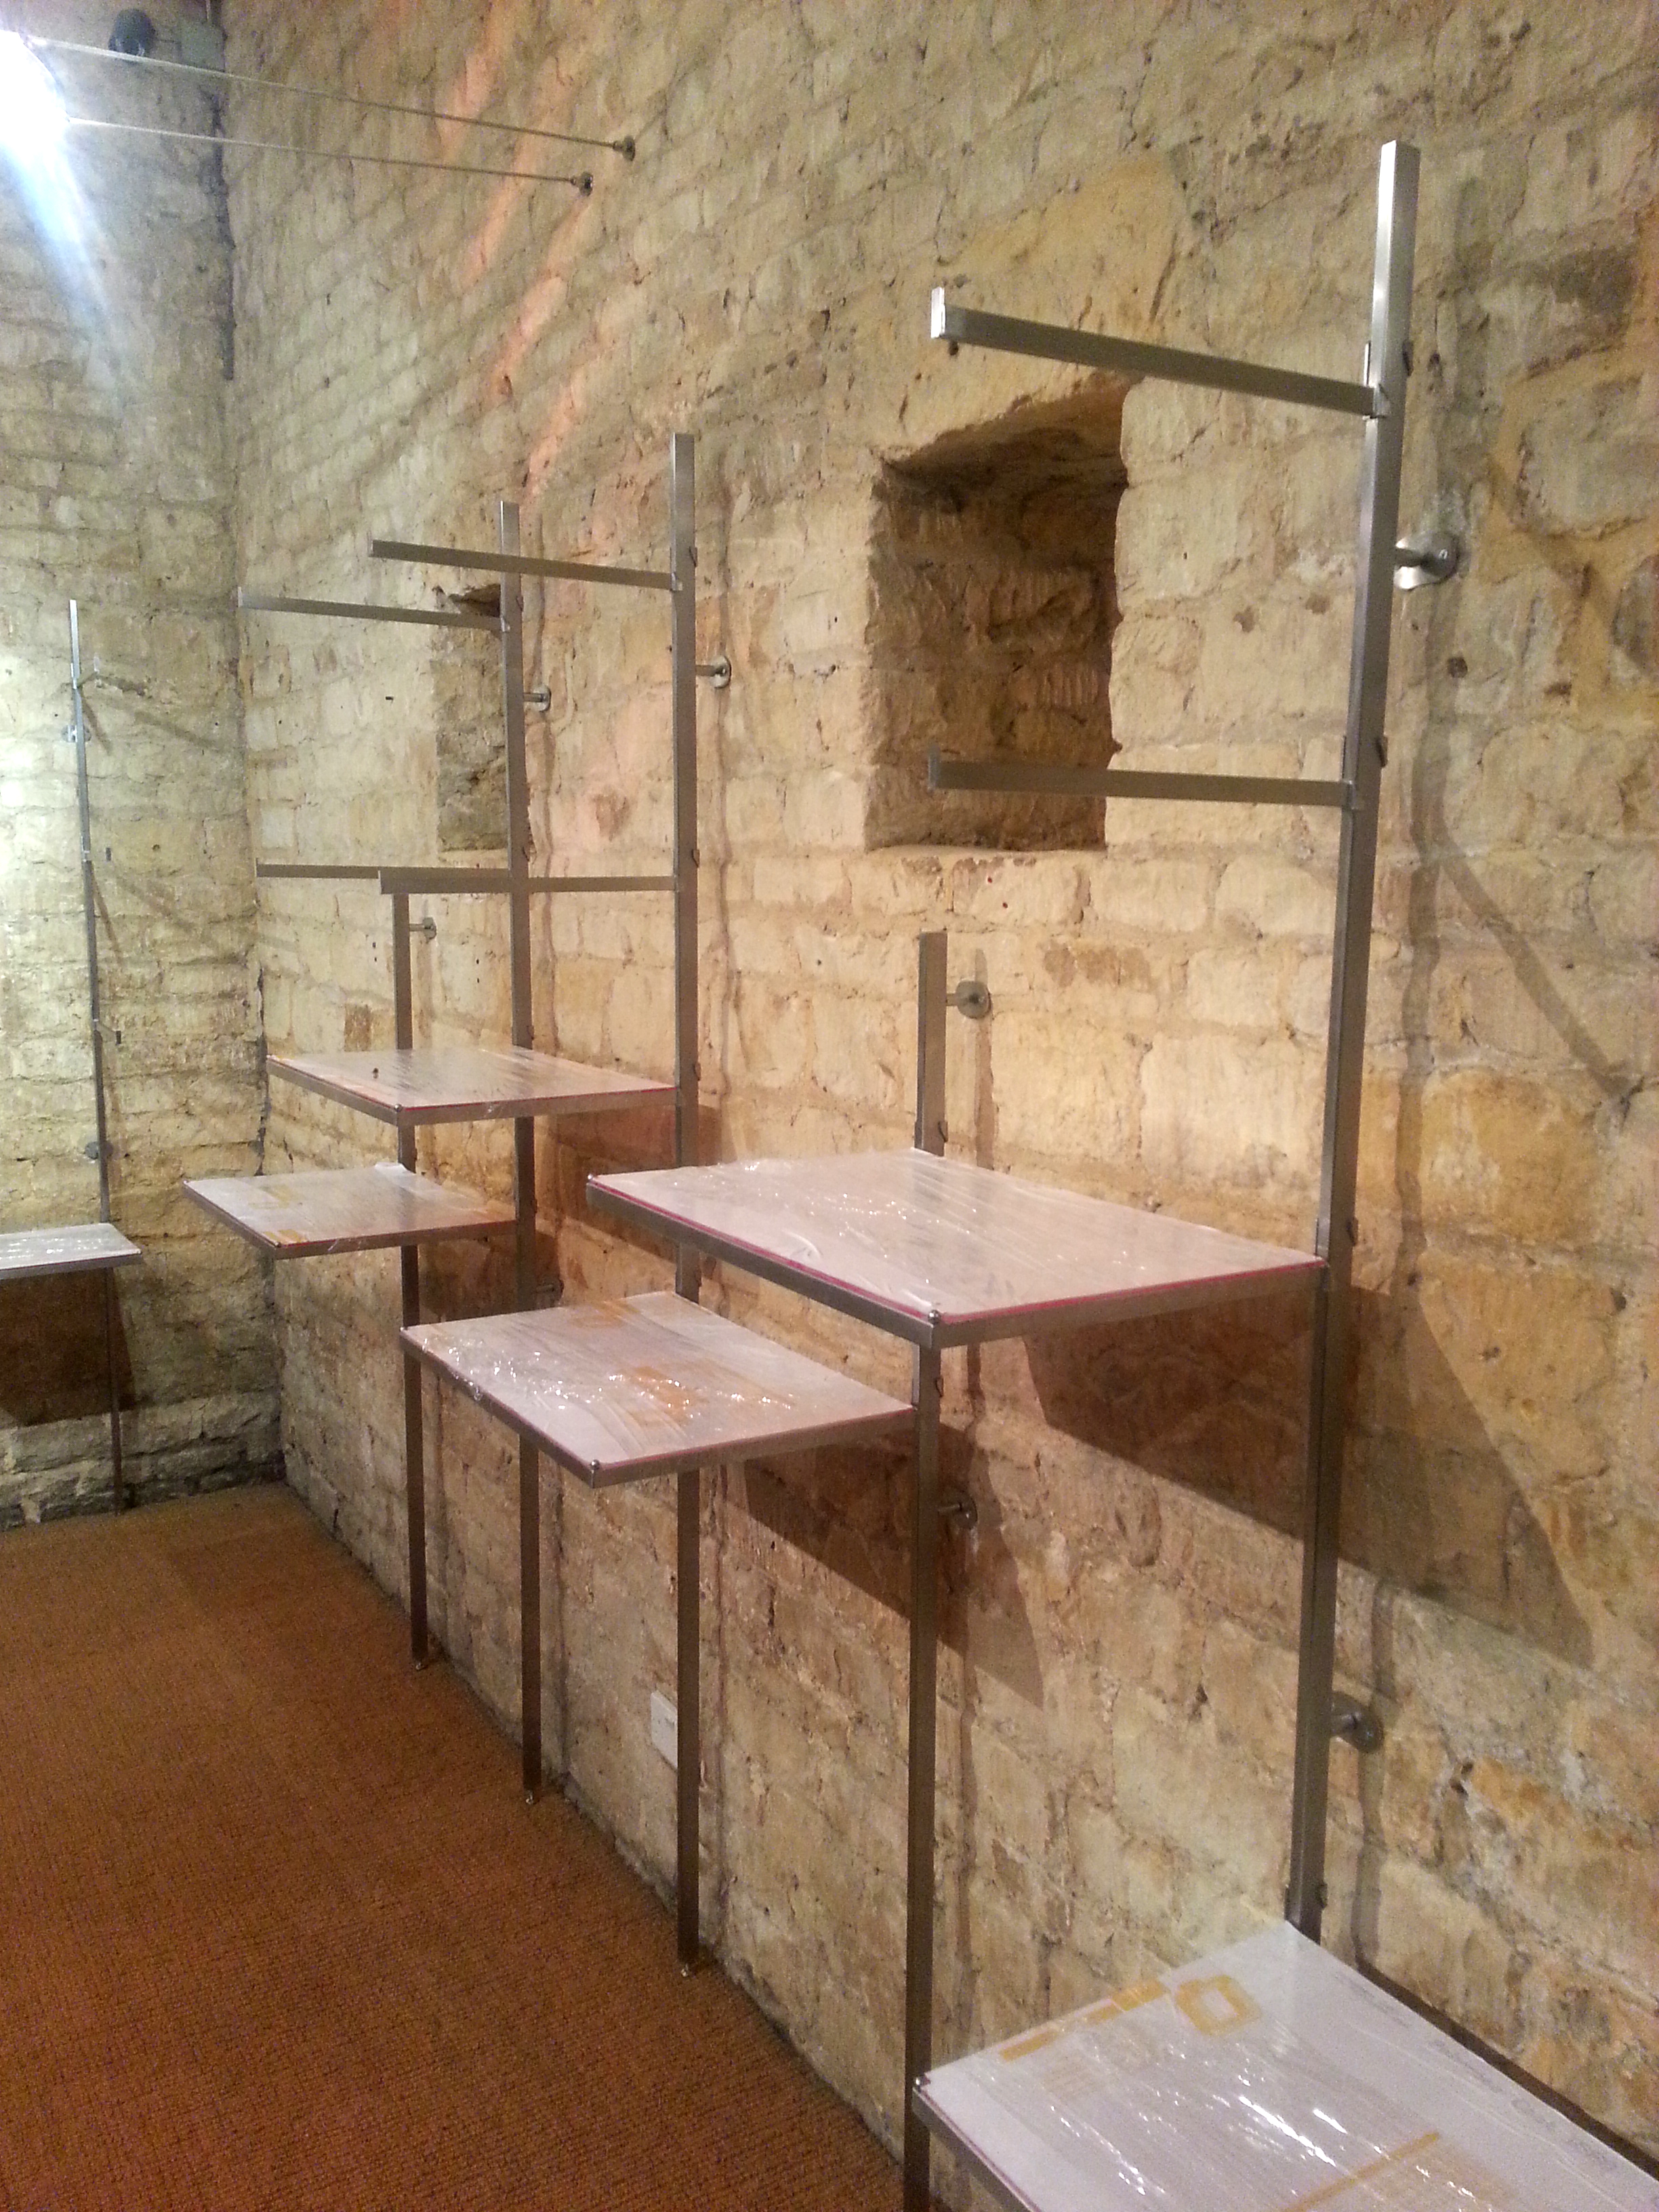 Cotswold stone - wall display fittings in progress